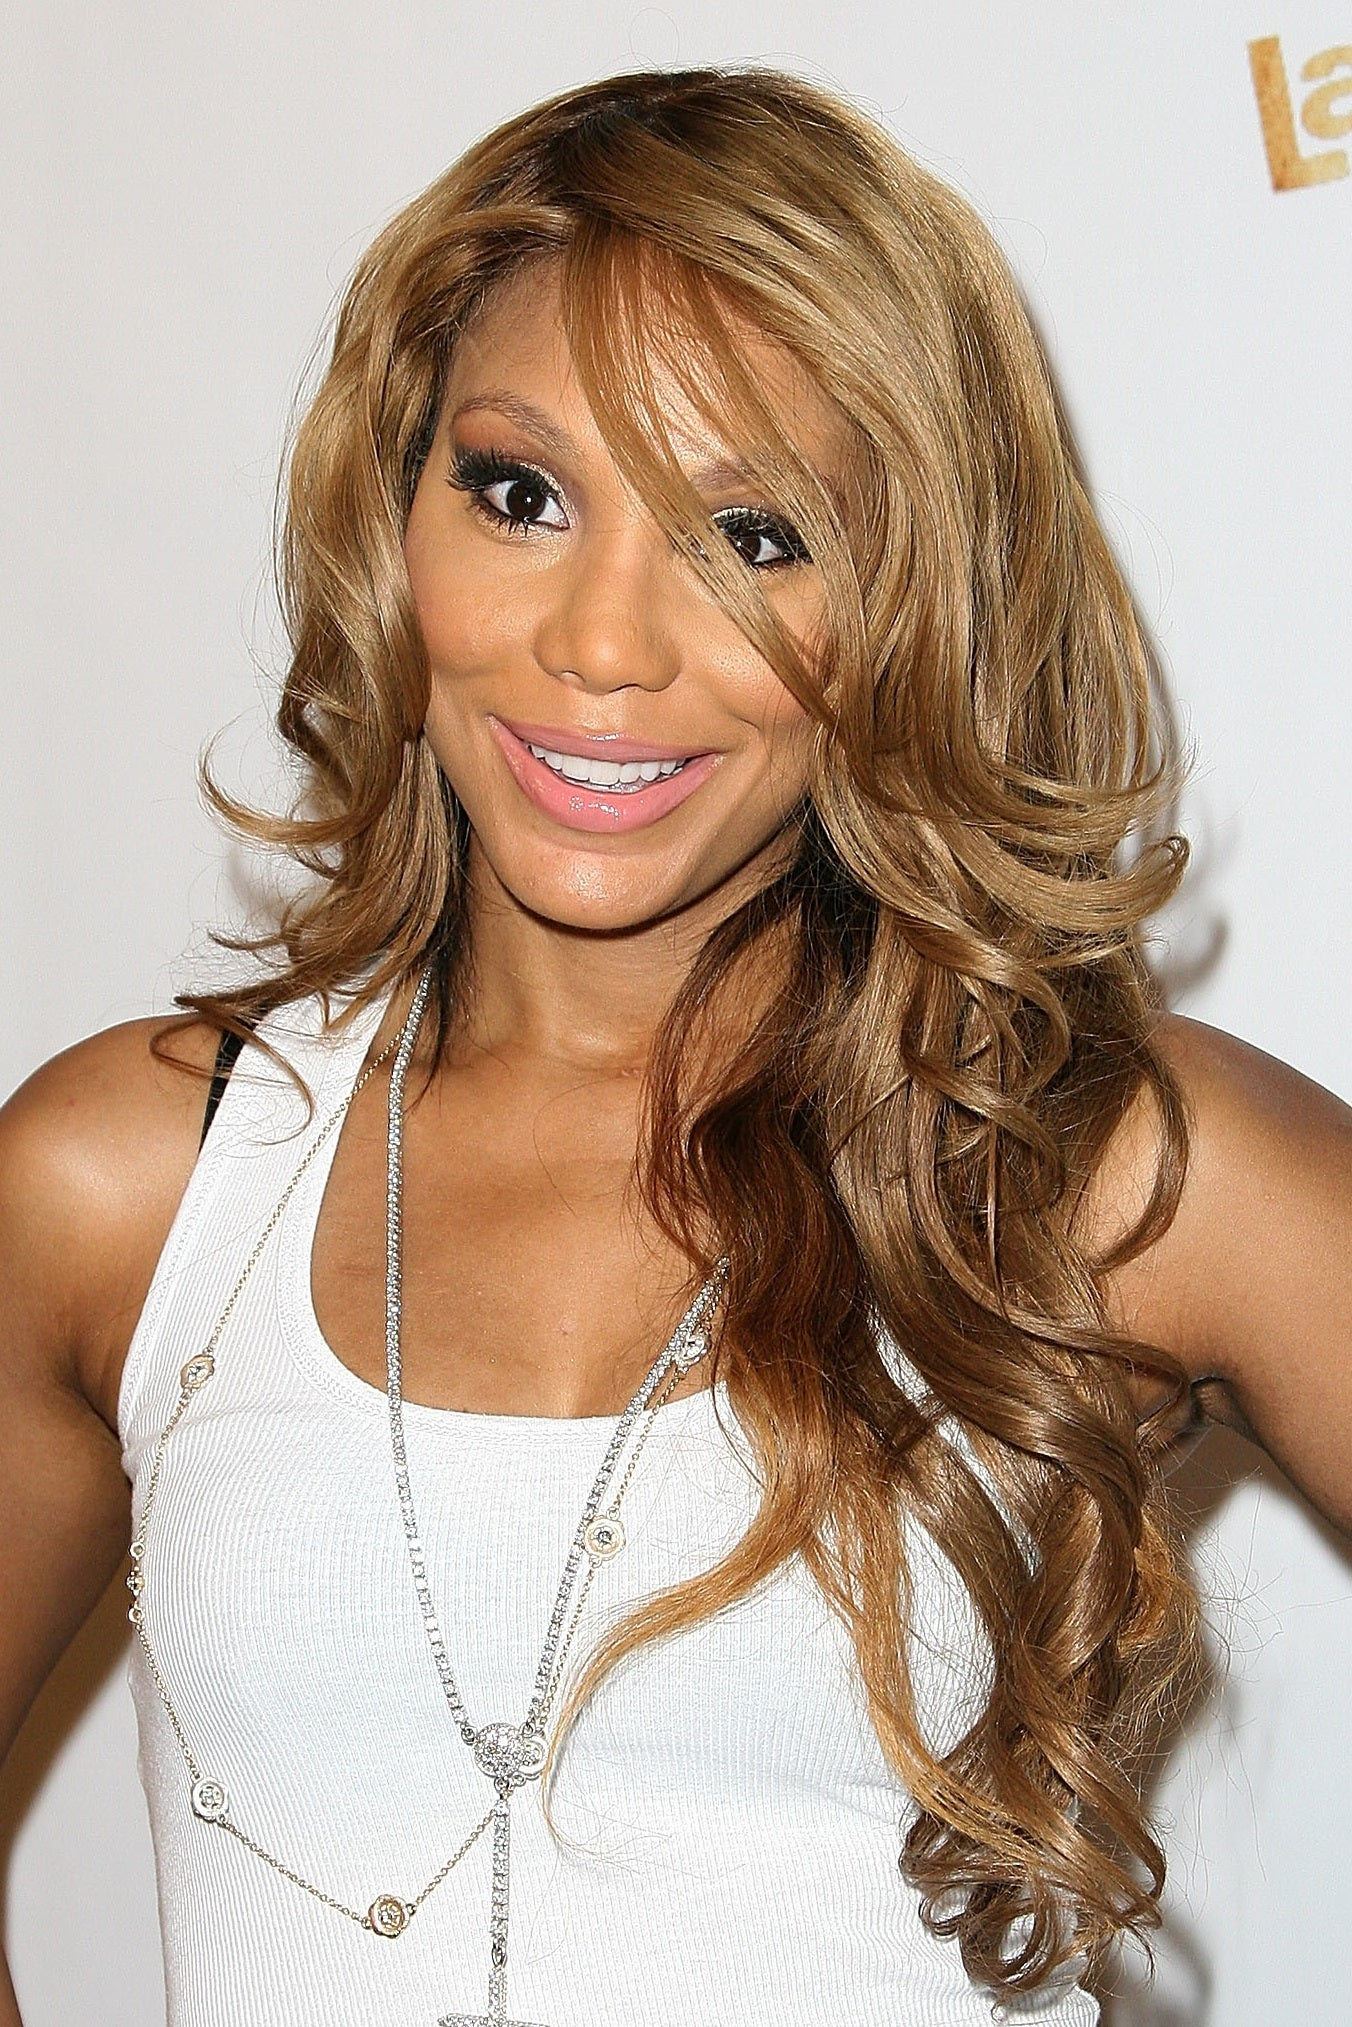 Tamar Braxton Dishes on Her Collection of Wigs and Weaves